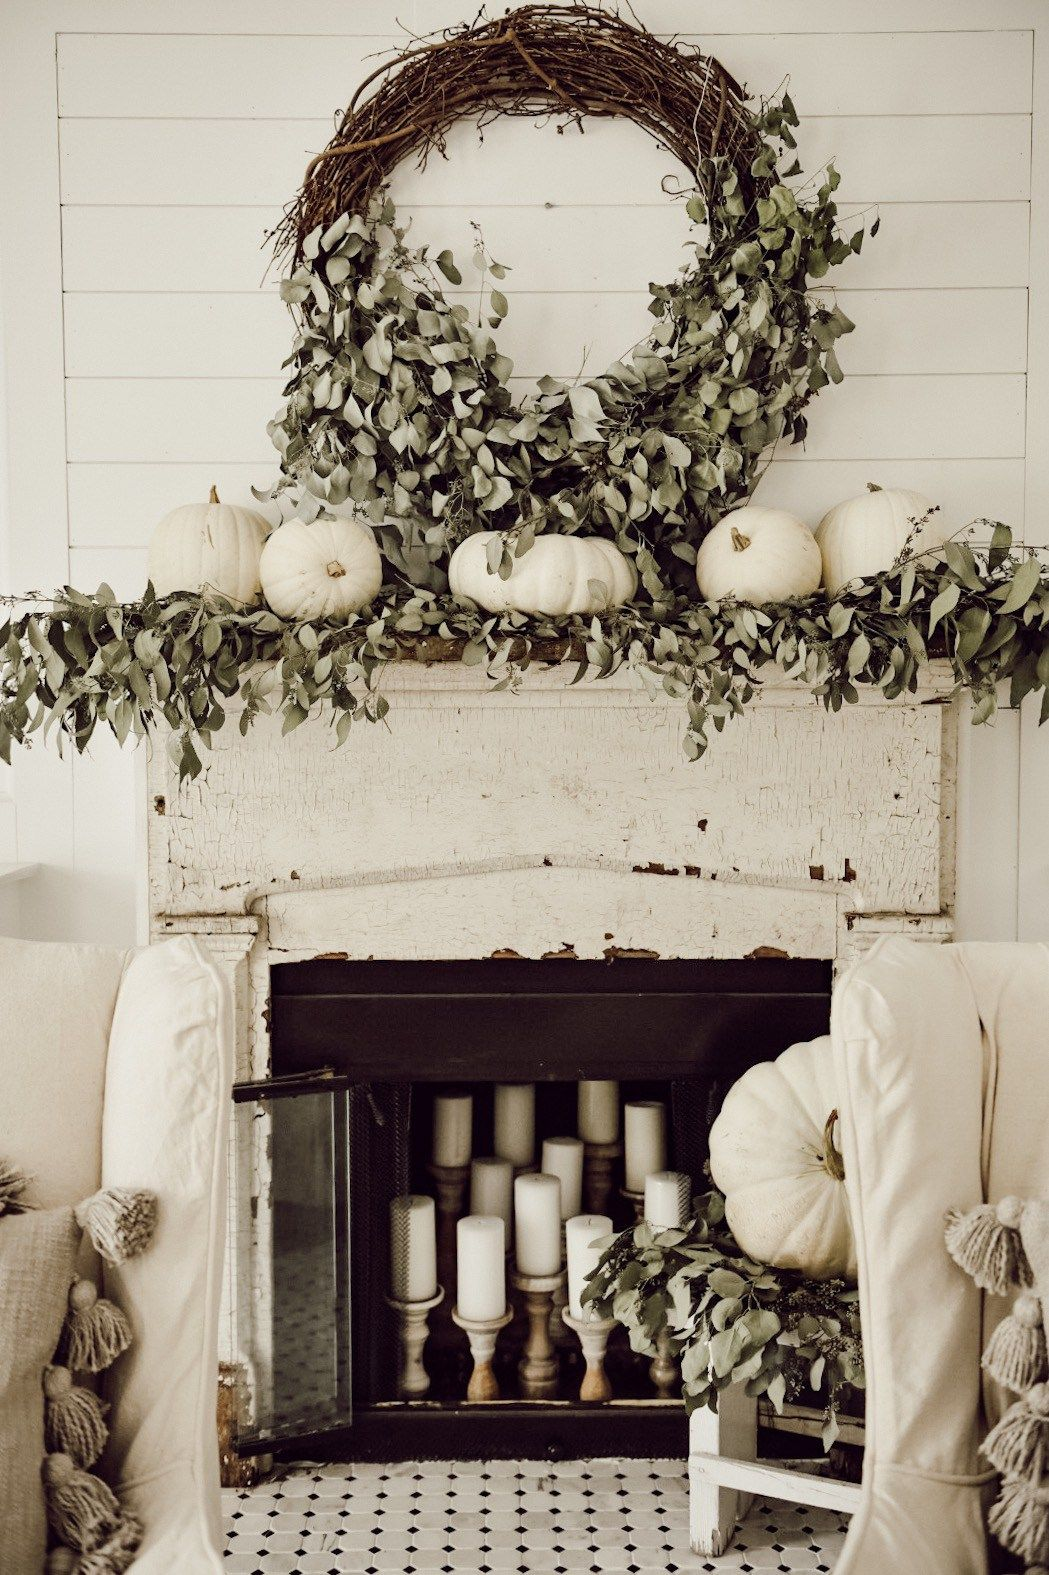 A Very Neutral Fall Mantel #fallmantledecor